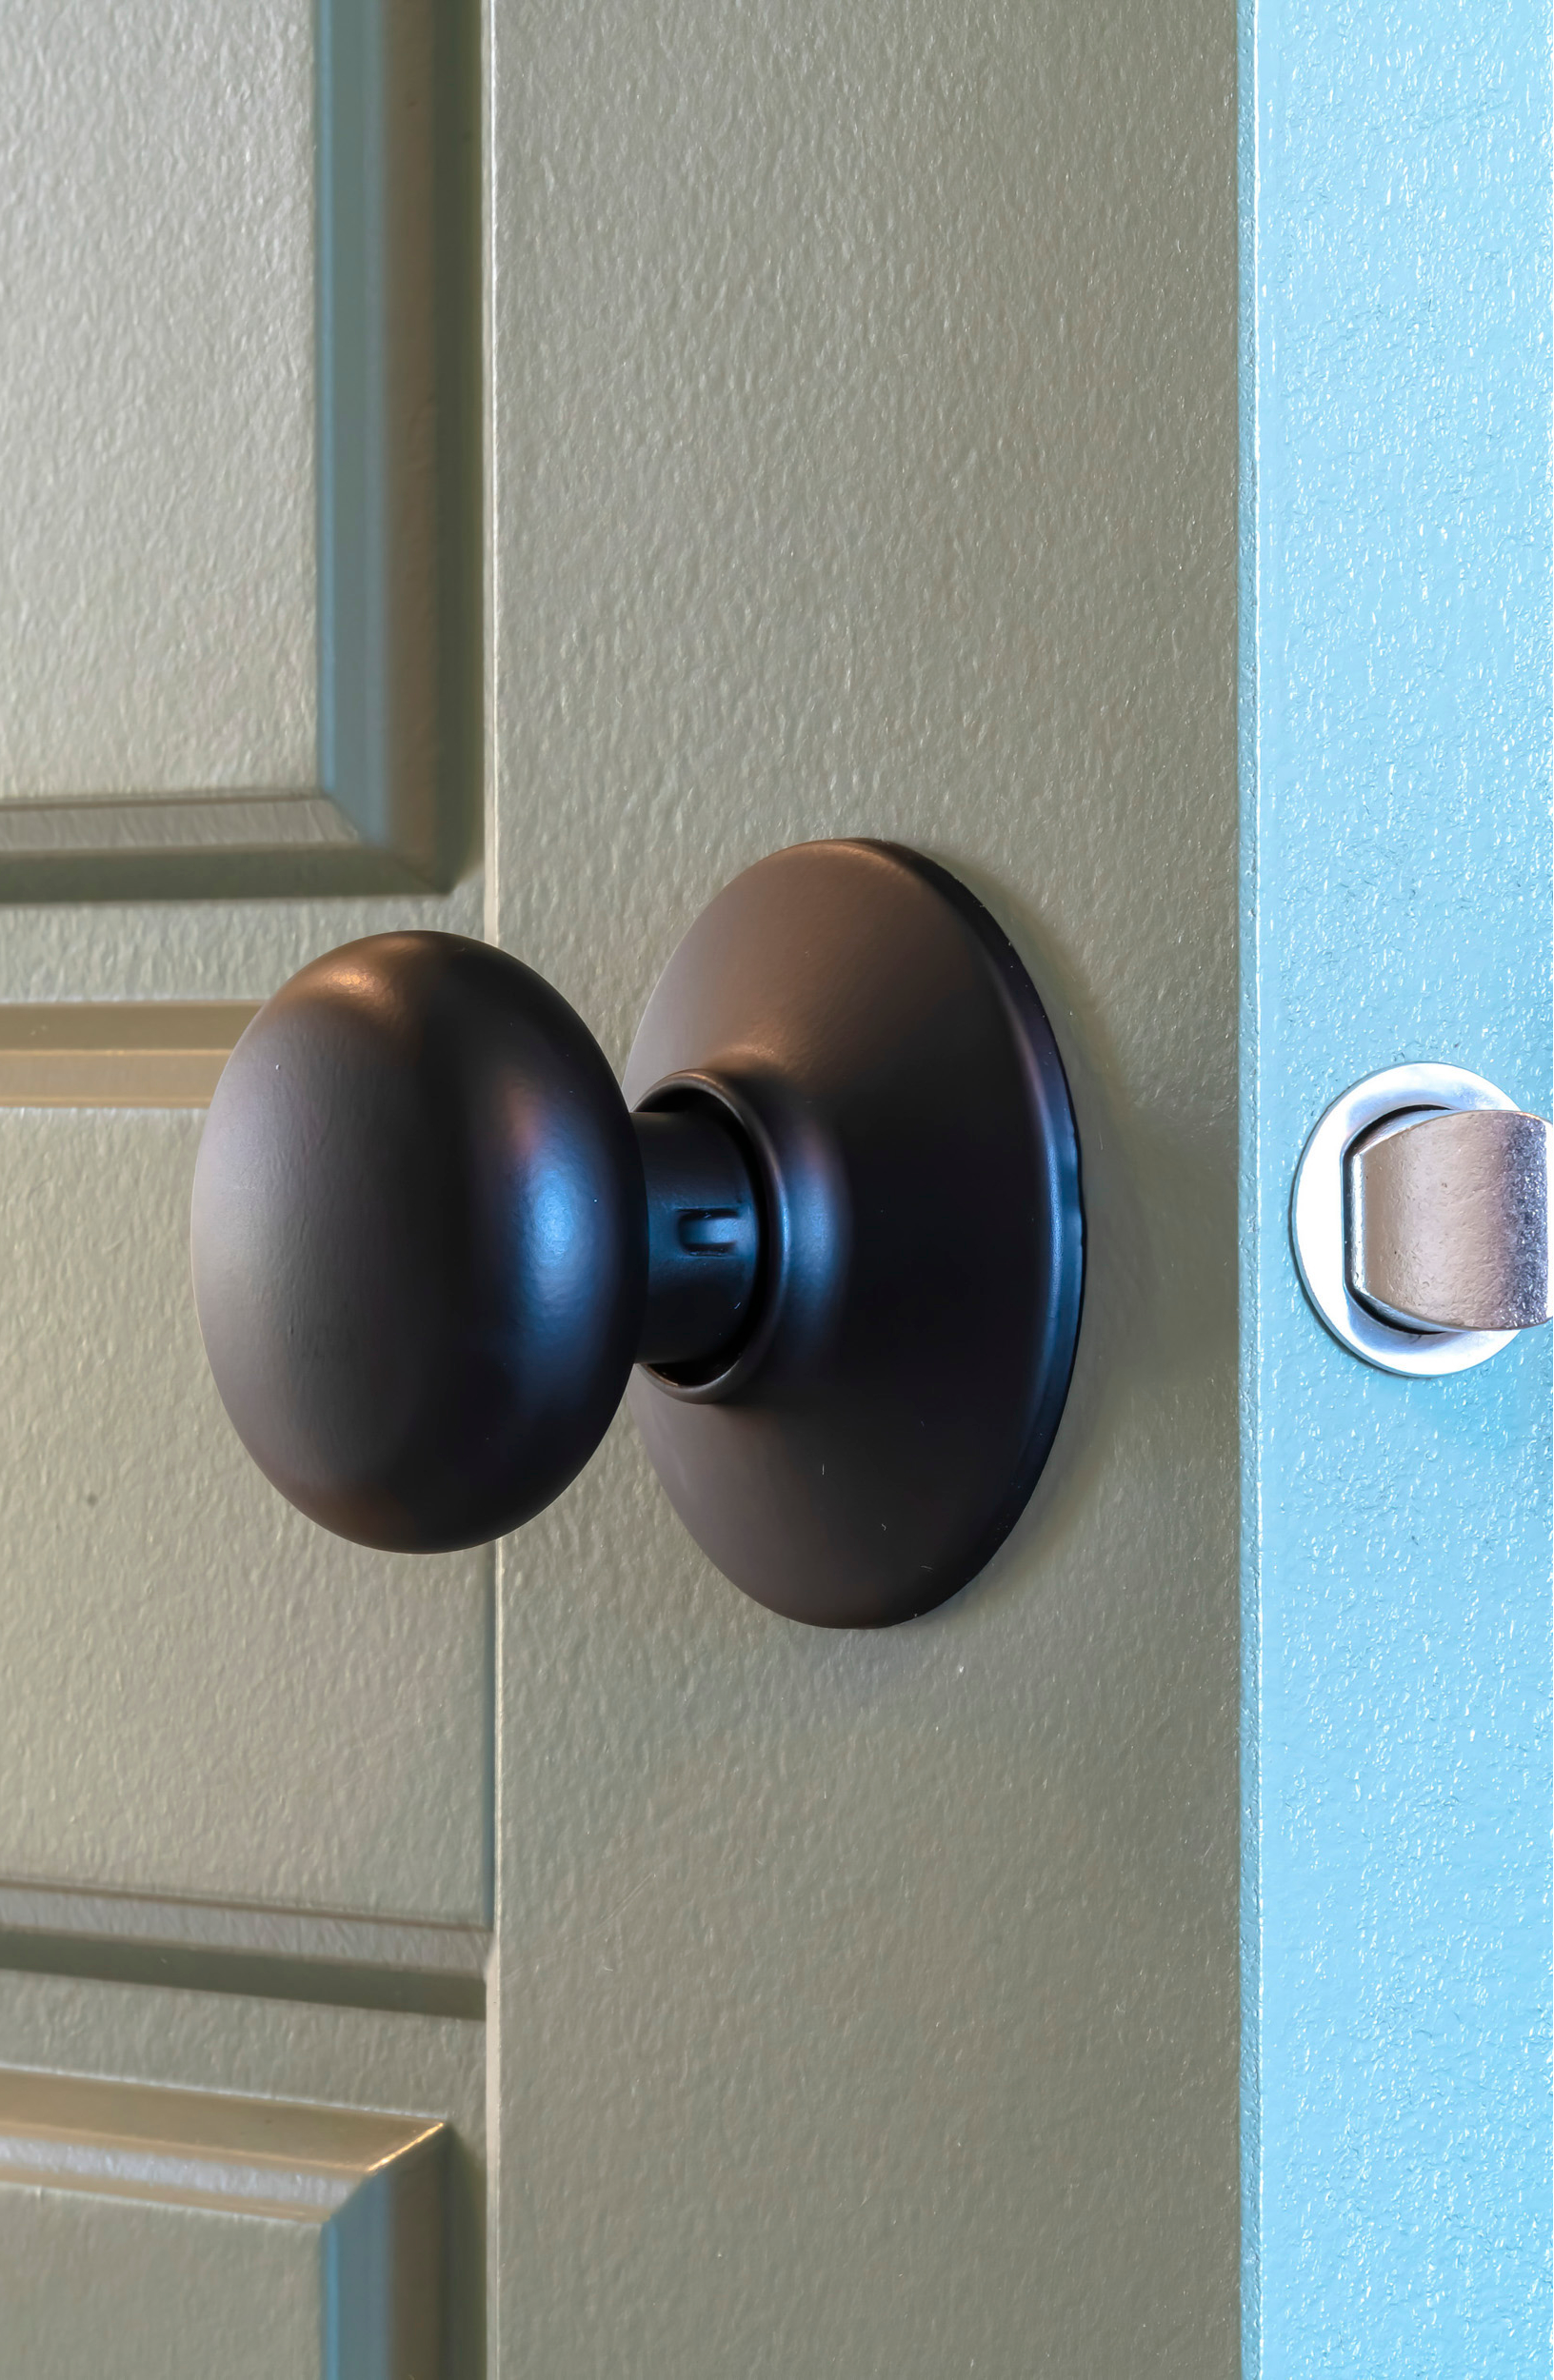 Home upgrades on a budget are possible! You would be amazed at how much doorknobs can change your home. Take your old brass ones and spray paint them black!